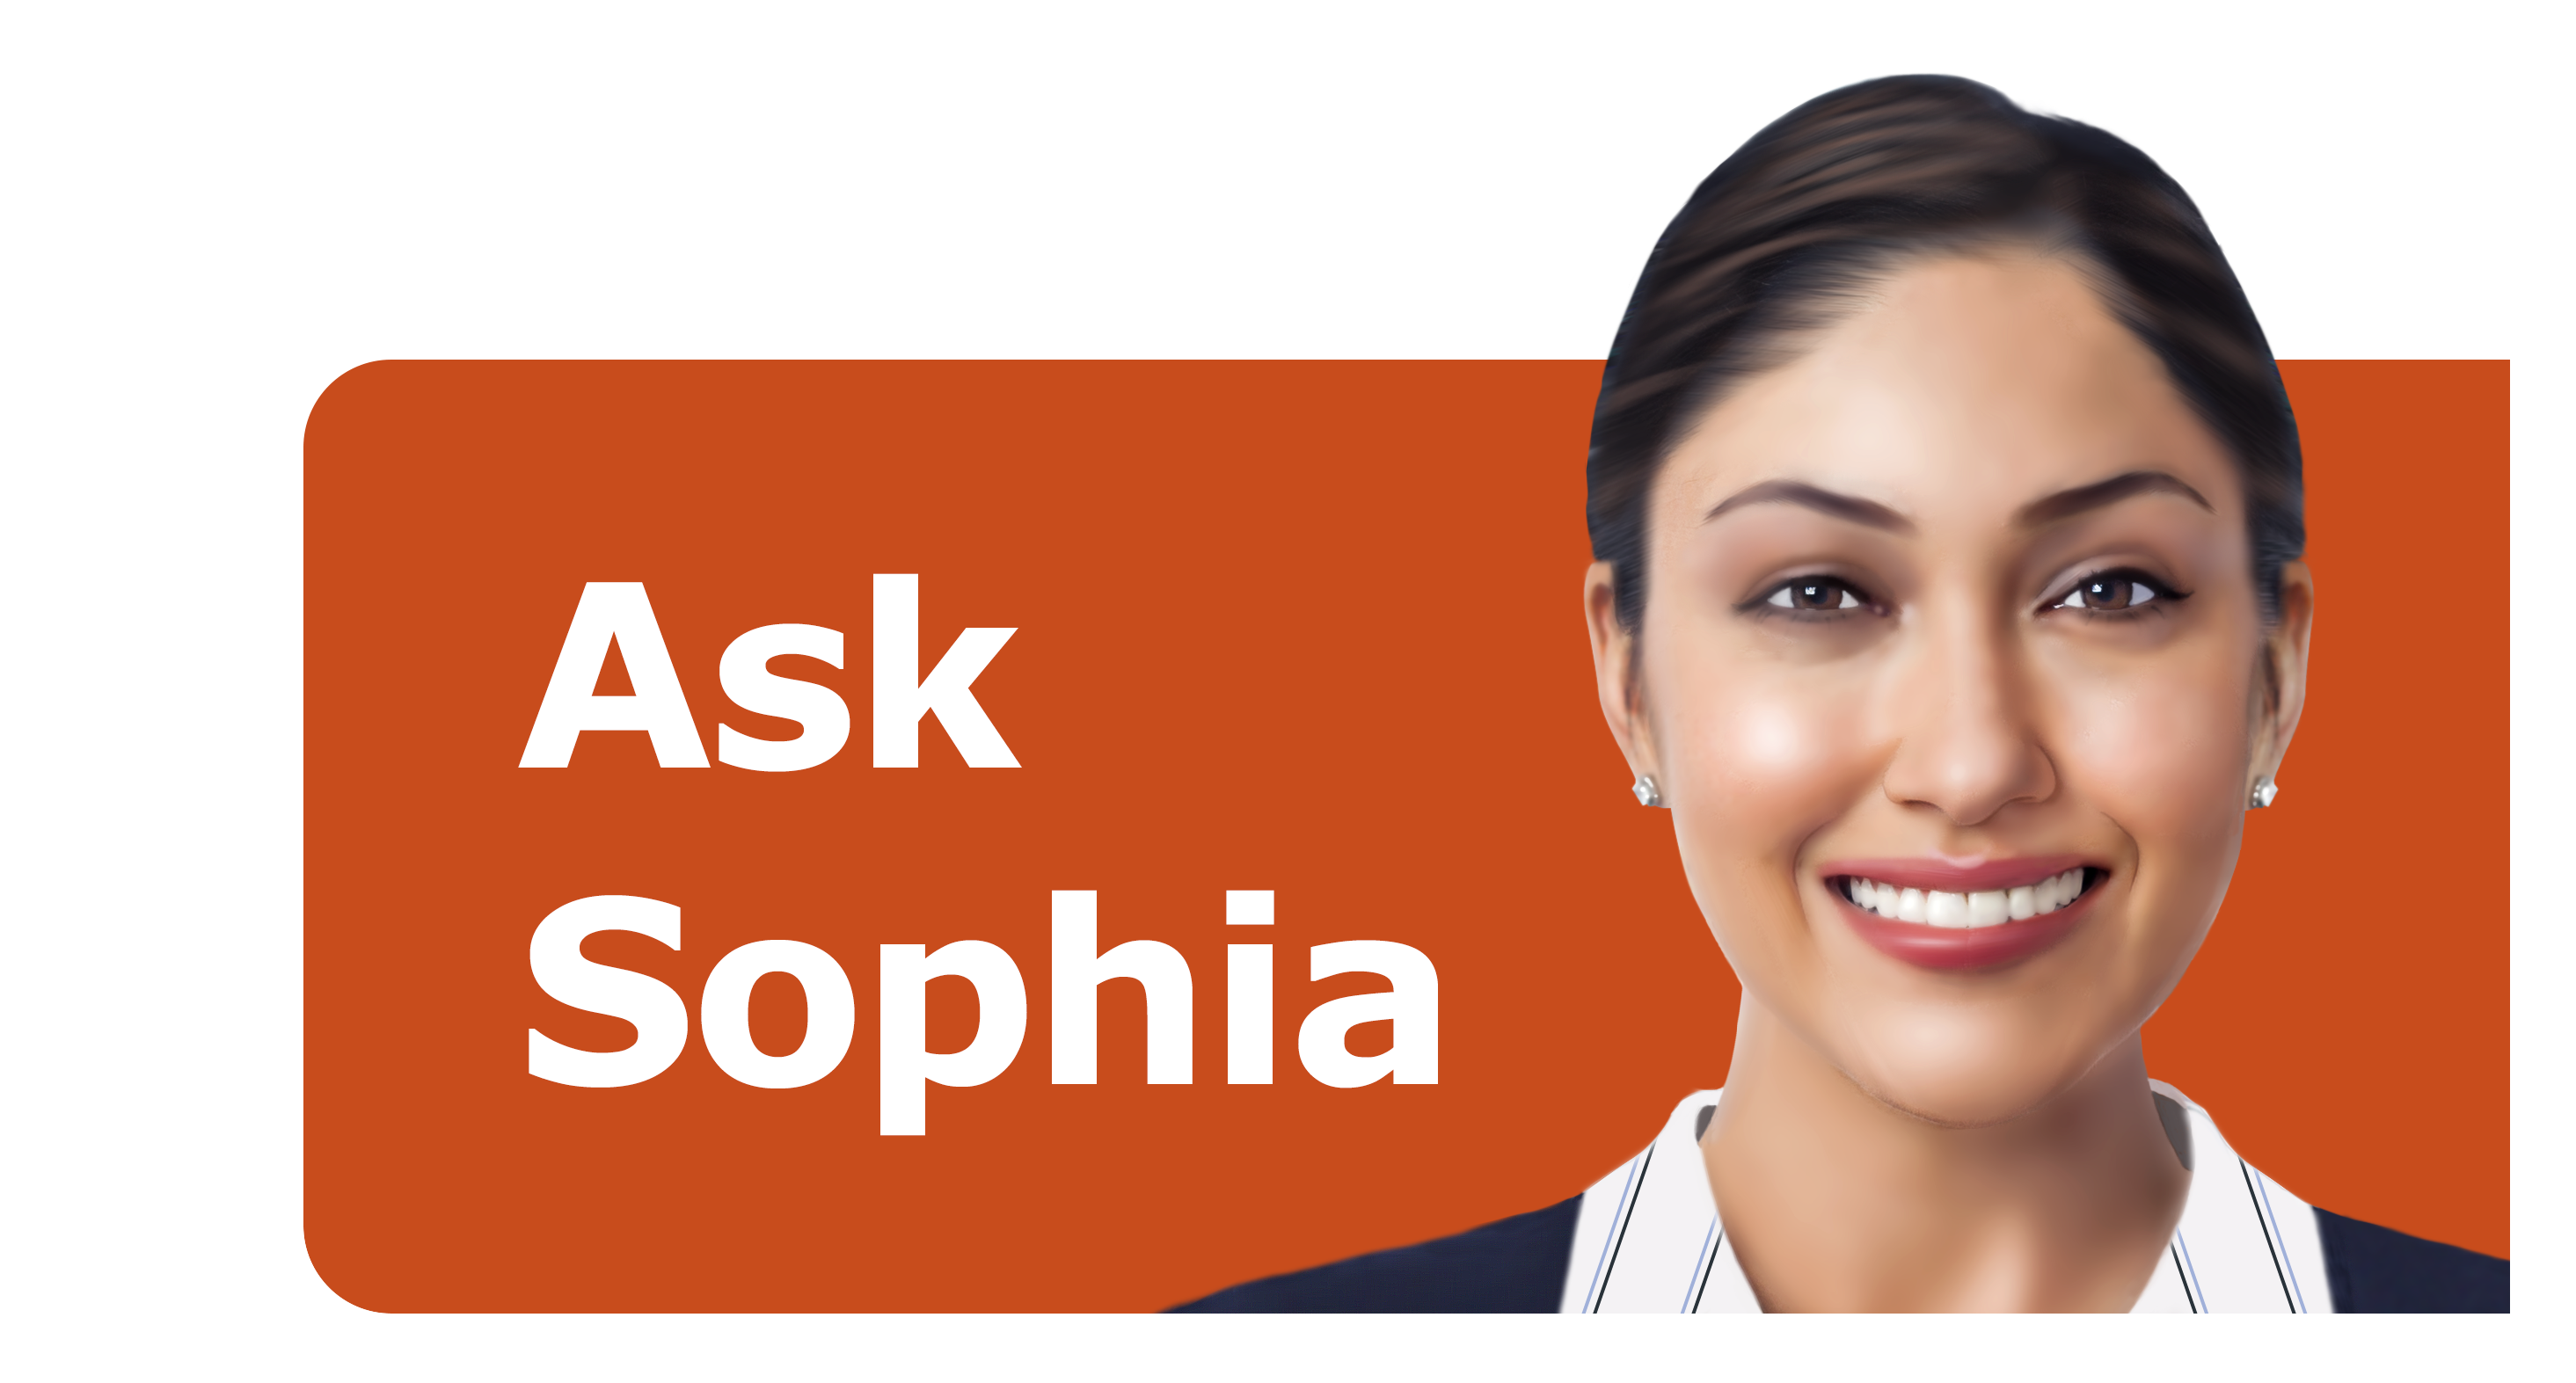 Say hello to Sophia, Novo Nordisk's new online chatbot, available 24/7 for diabetes questions